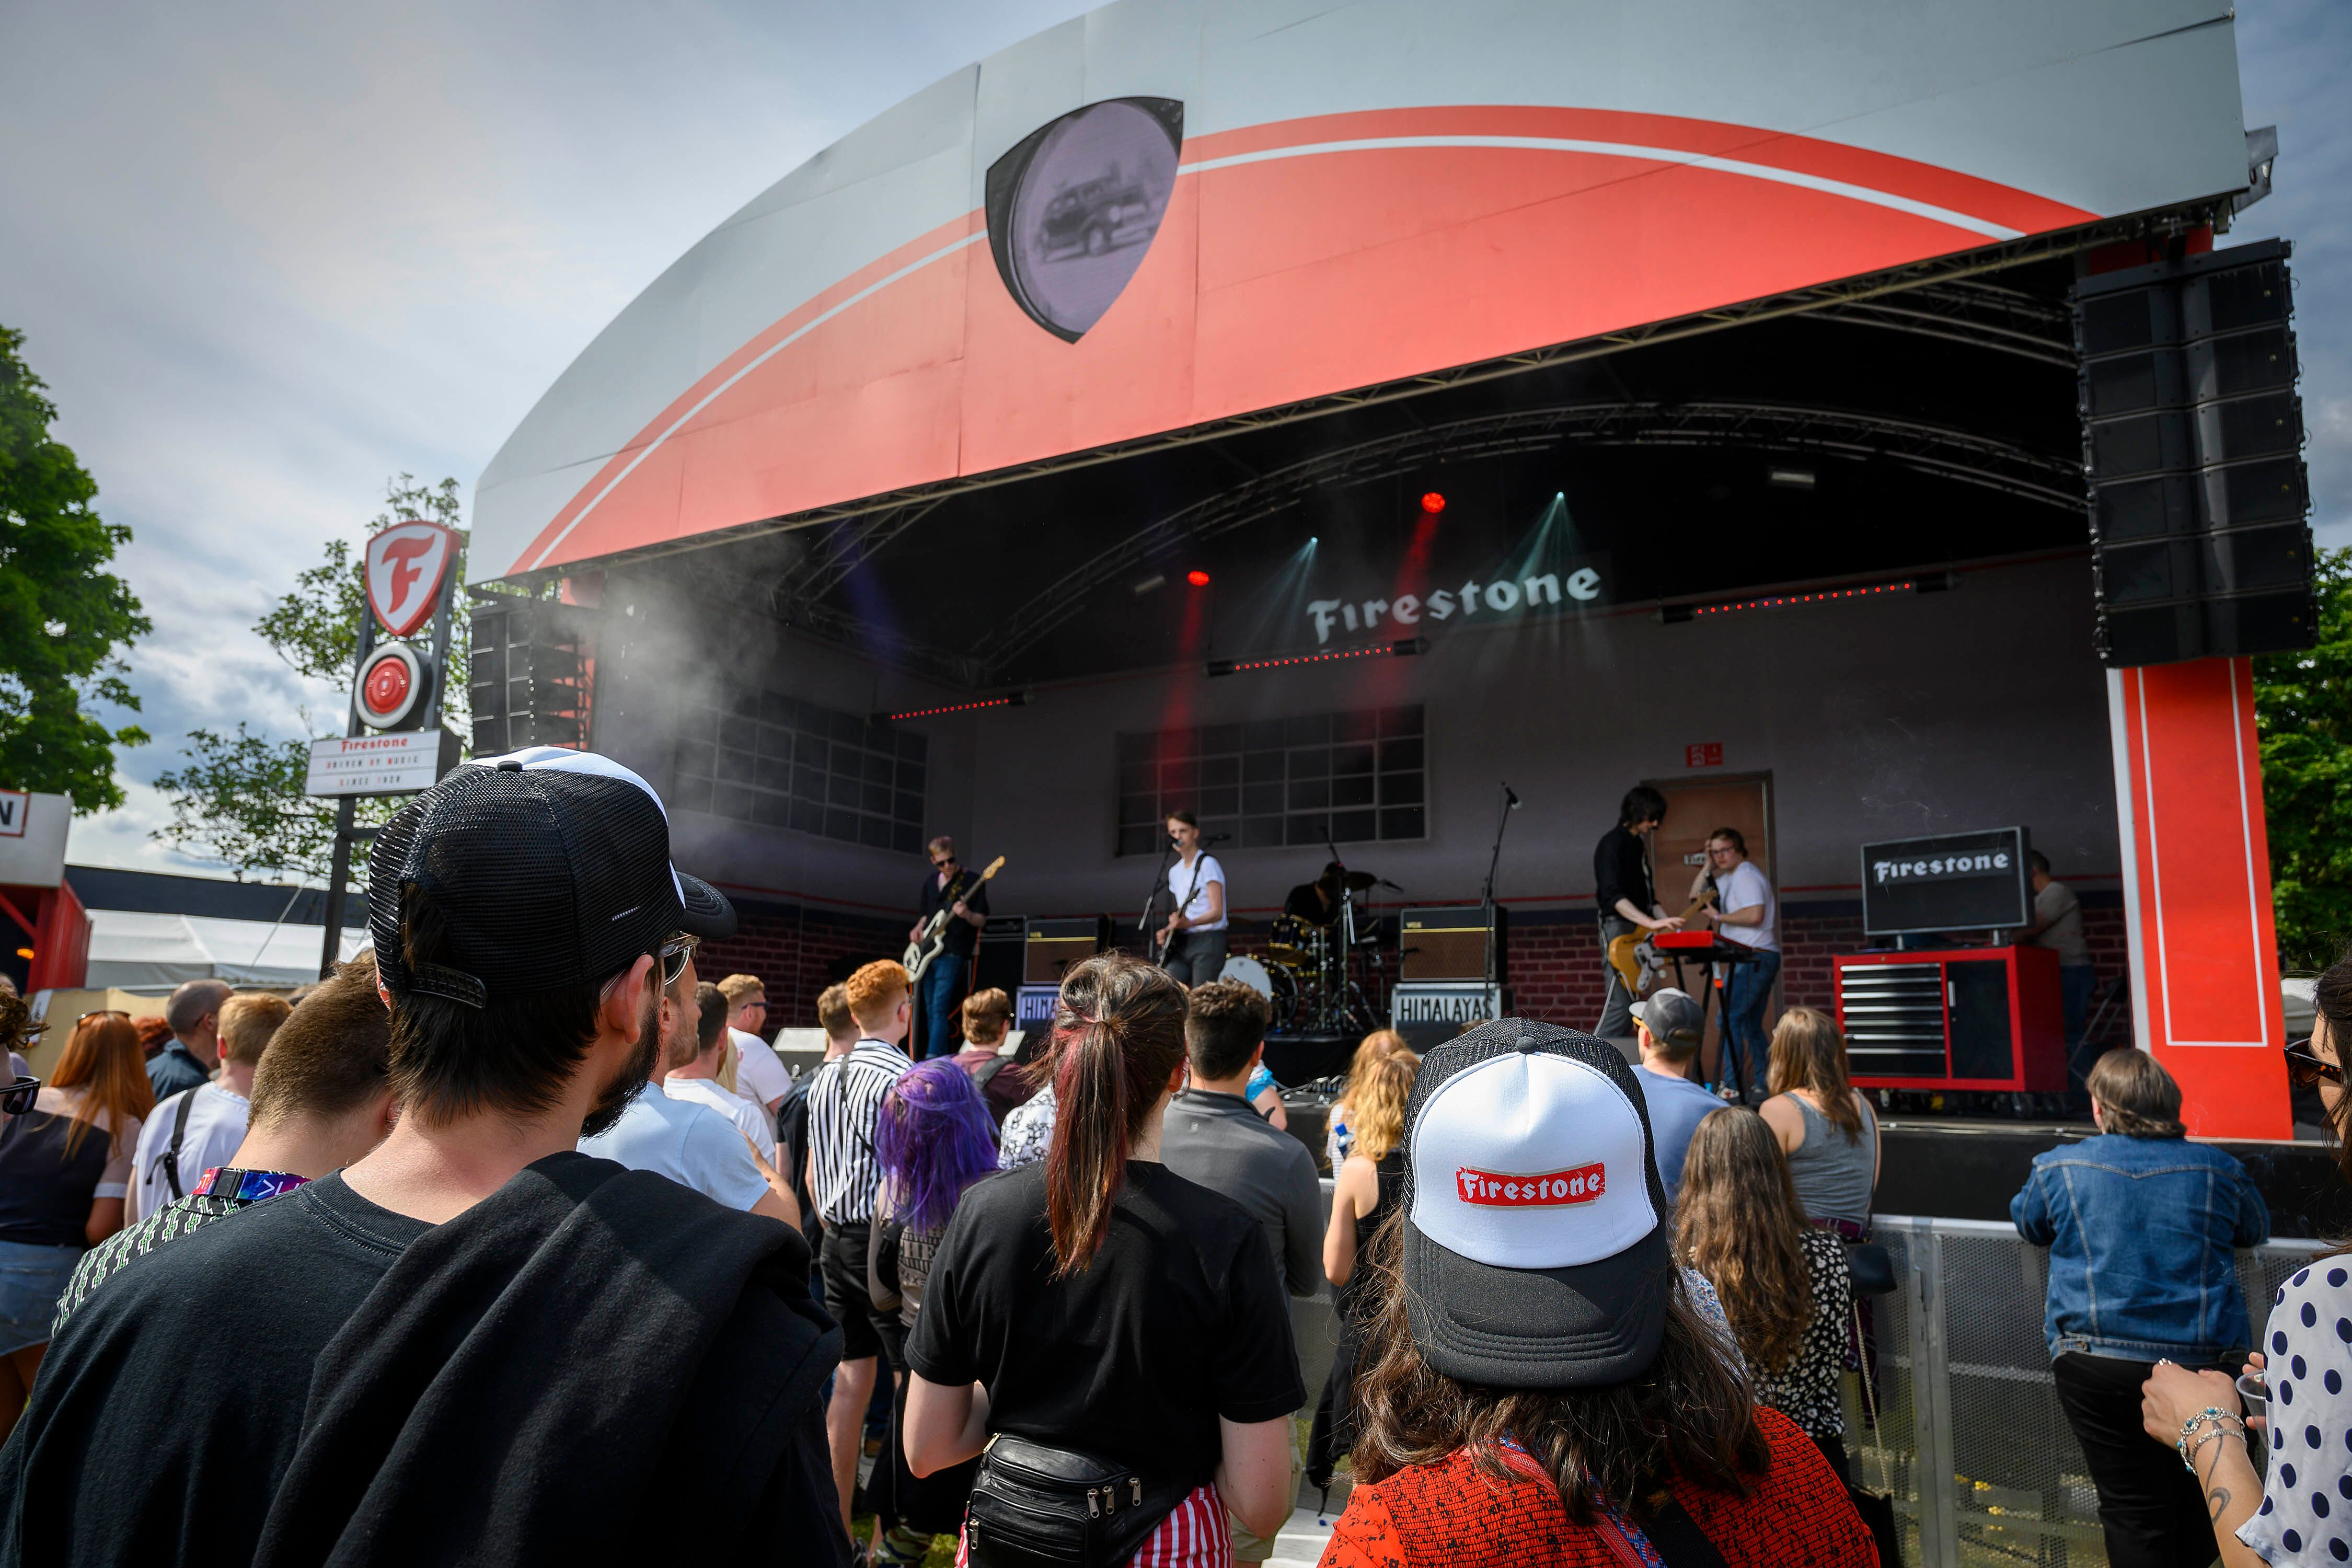 Firestone announces 8 Road to the Main Stage finalists